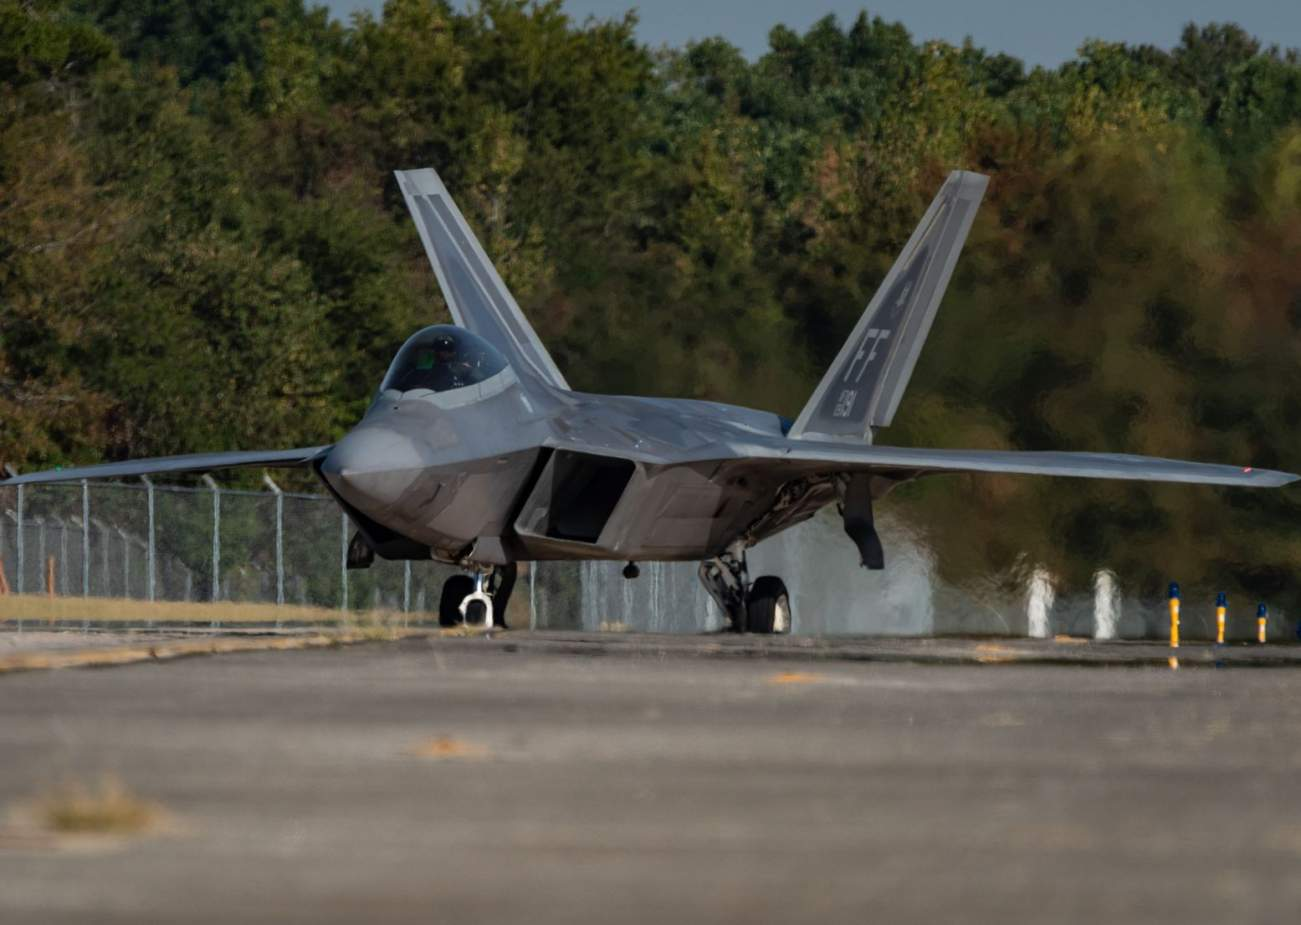 Stealth Defeated? France Once Shot down an F-22 Raptor